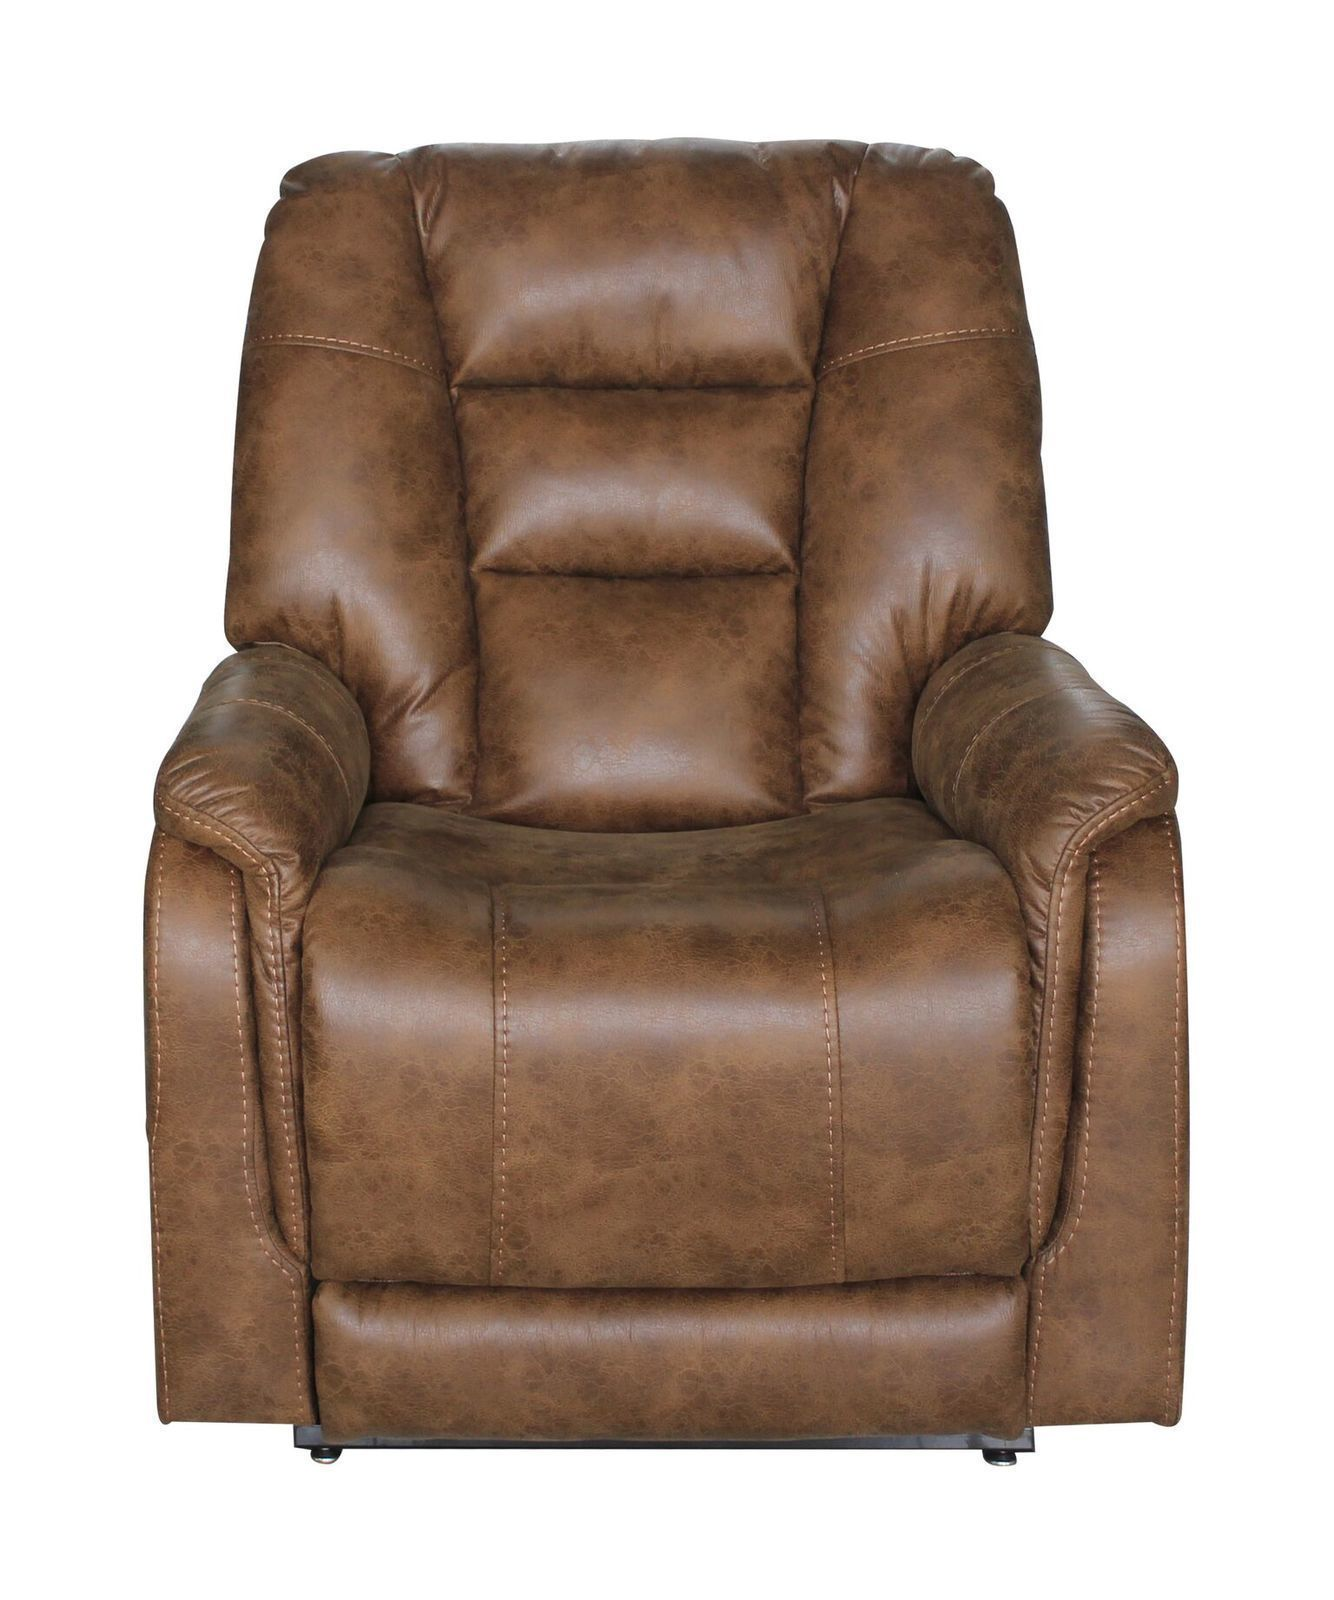 Mercer Lift Chair